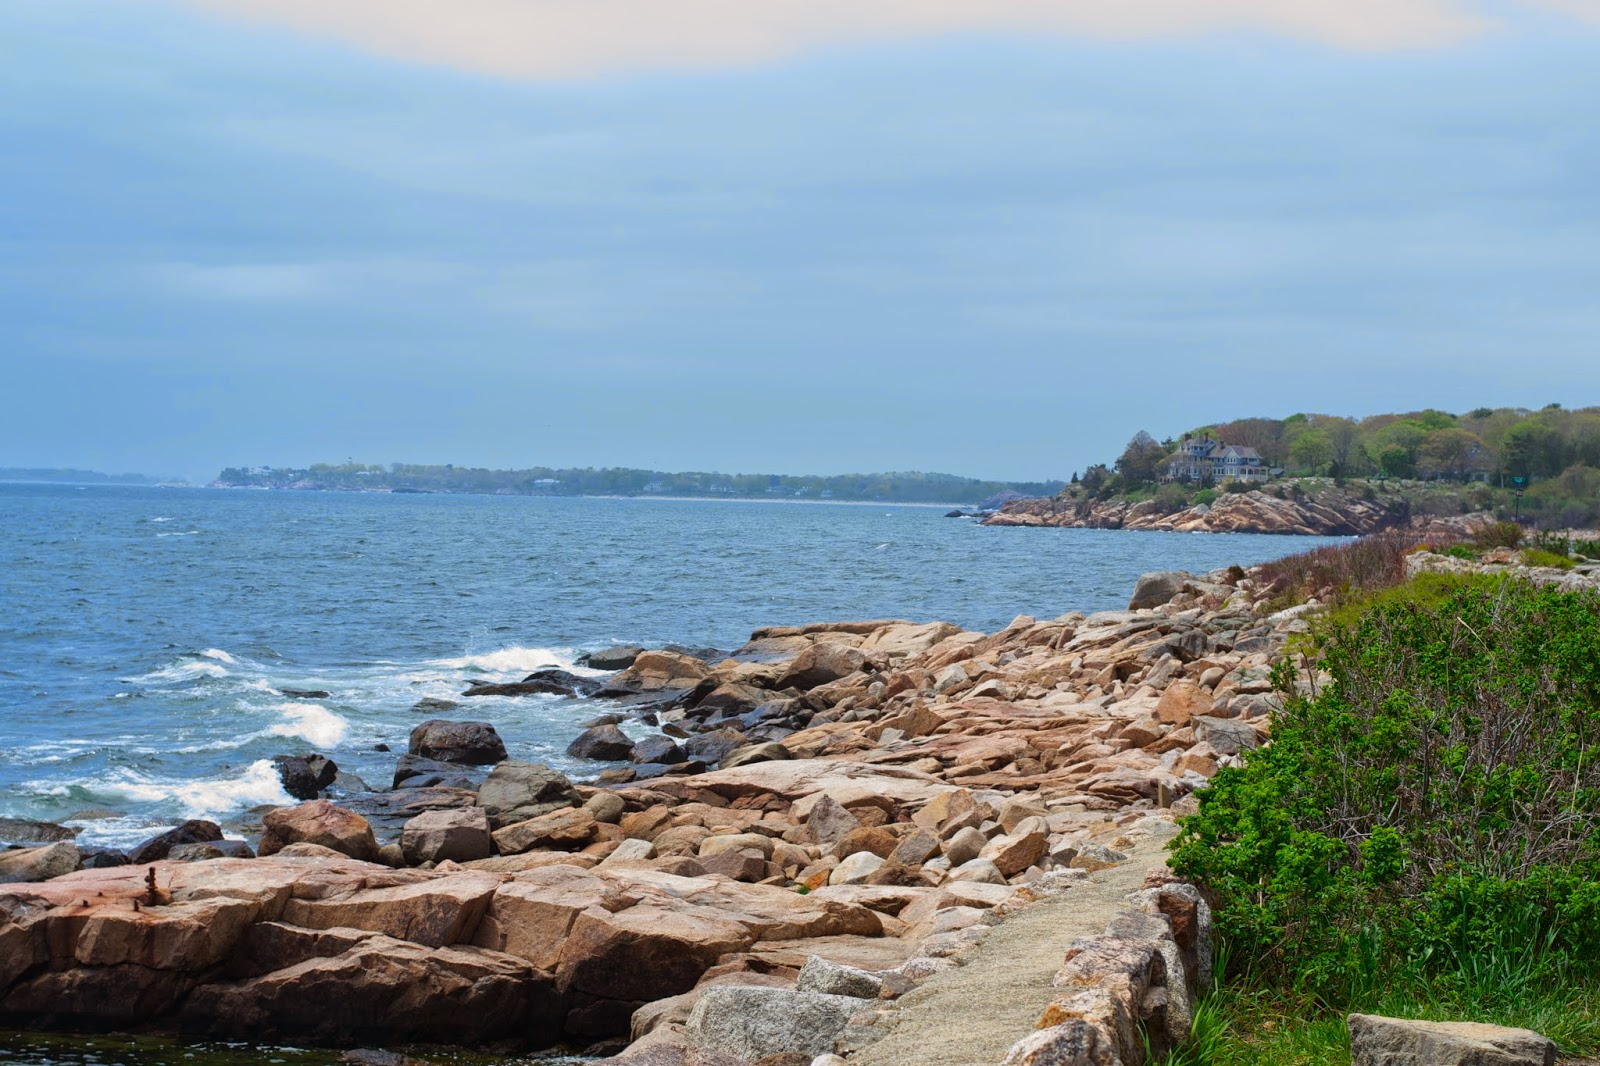 A view along the coastal road. Looking out at the ocean and towards a neighboring town.